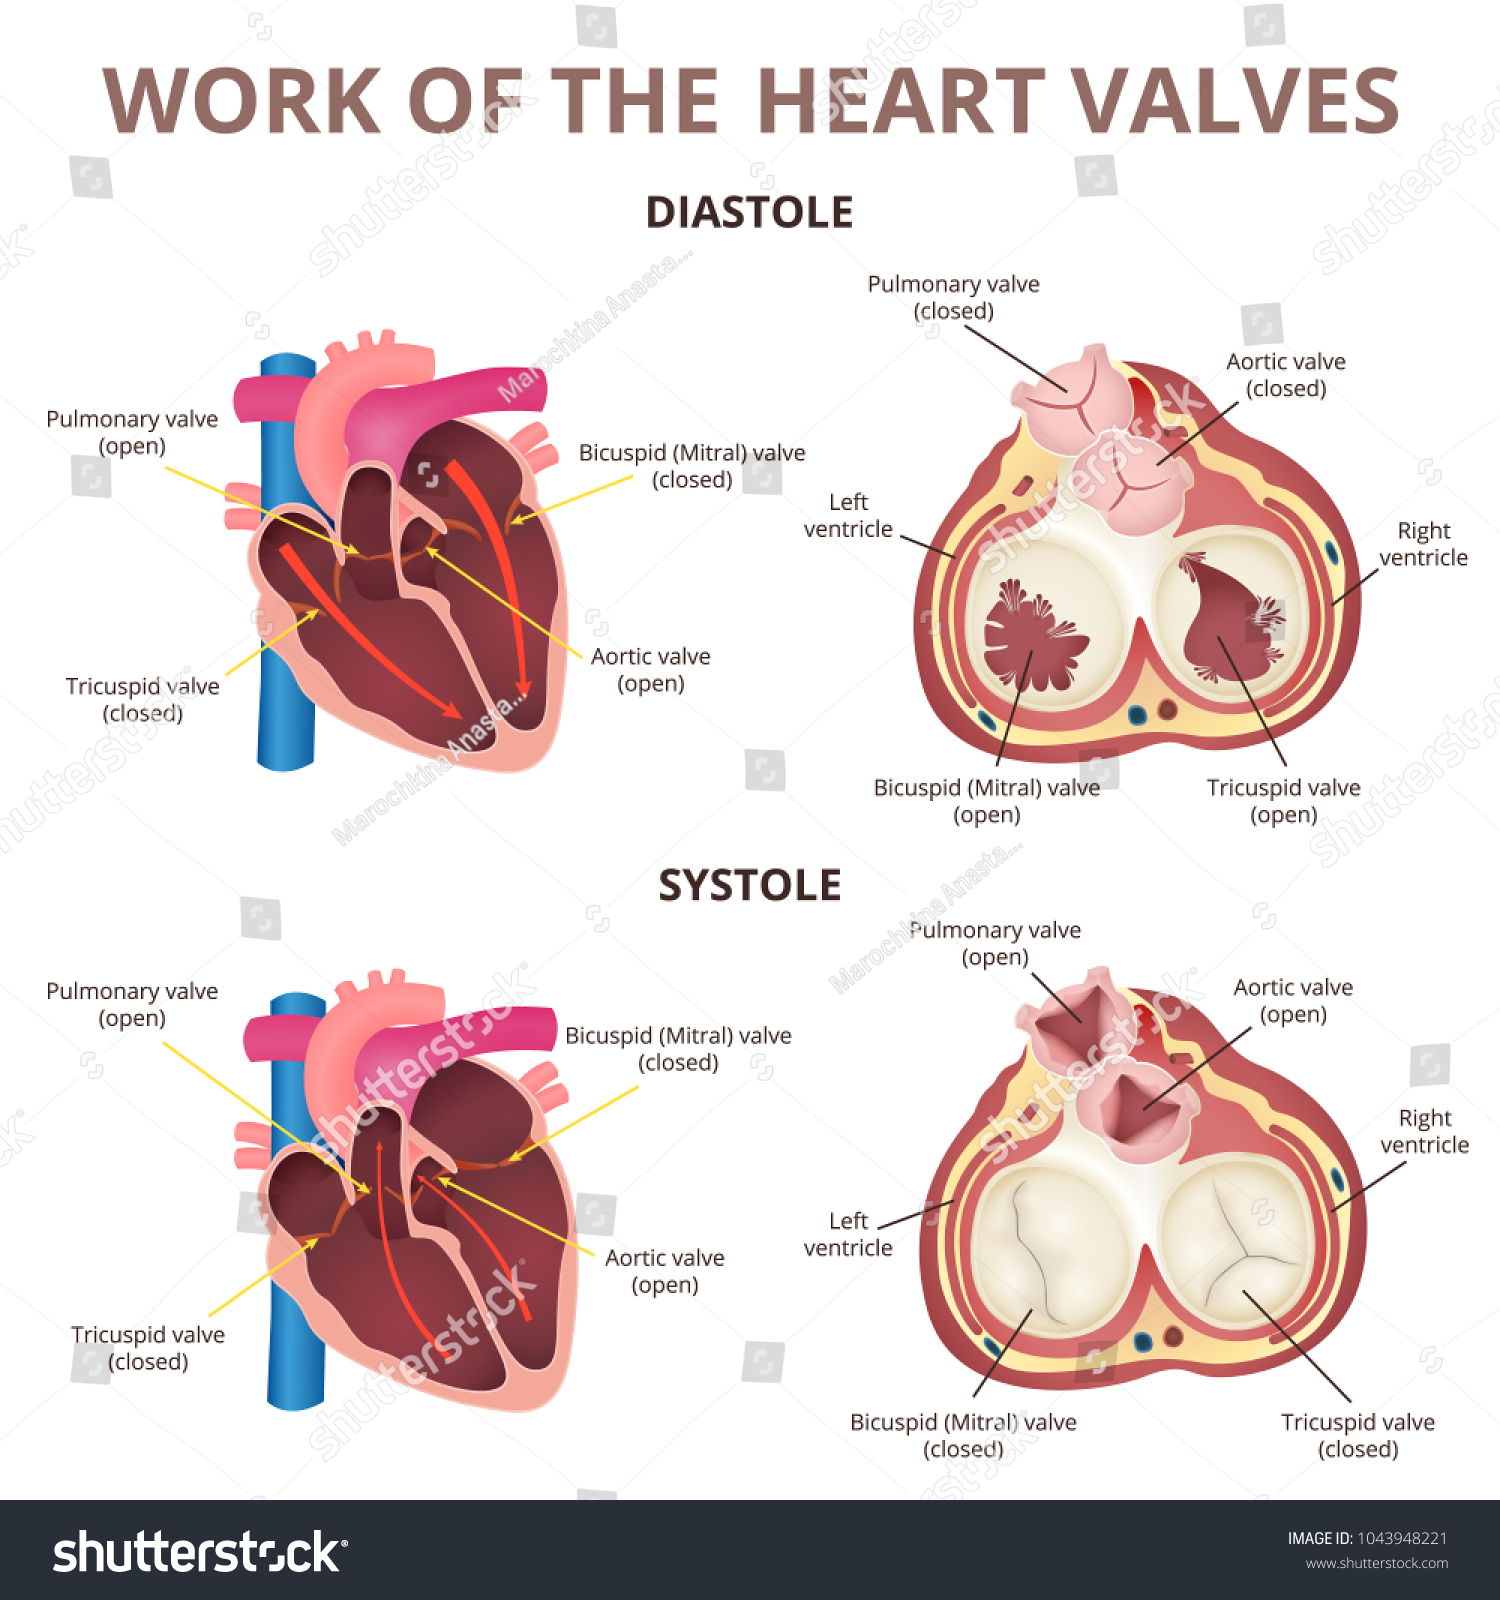 hight resolution of the work of heart valves anatomy of the human heart diastole and systole